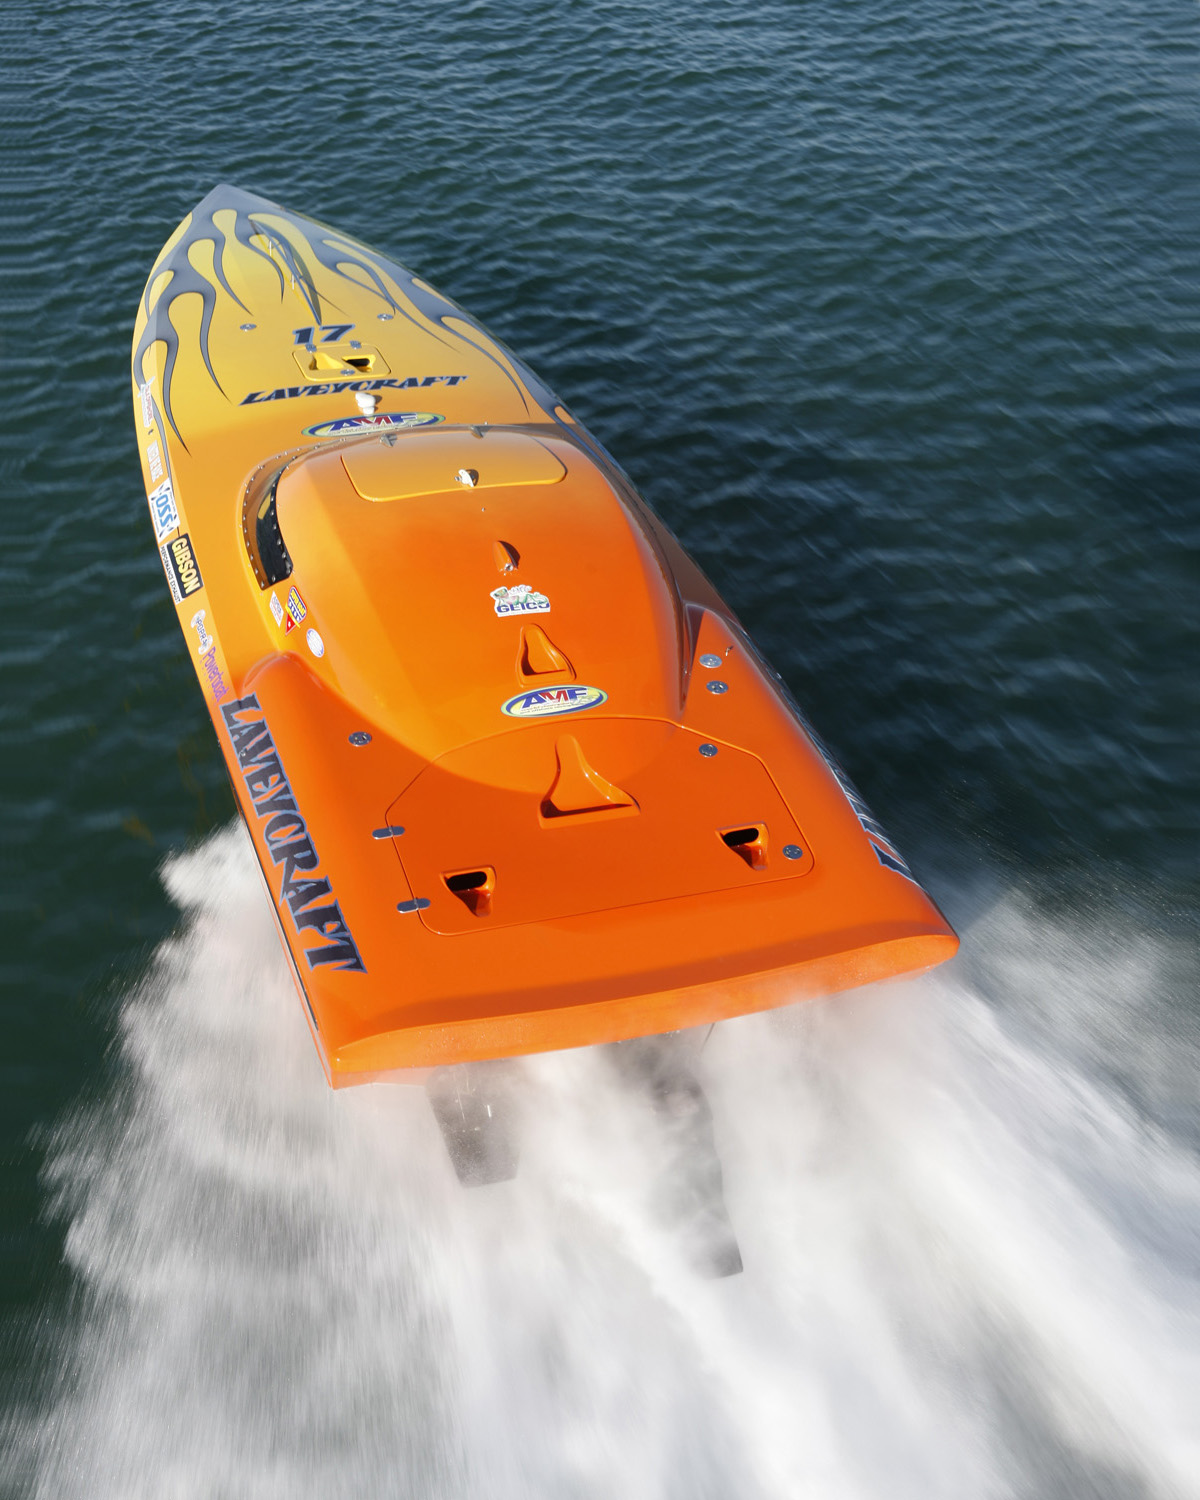 Lavey Craft 2750 race boat from top.JPG